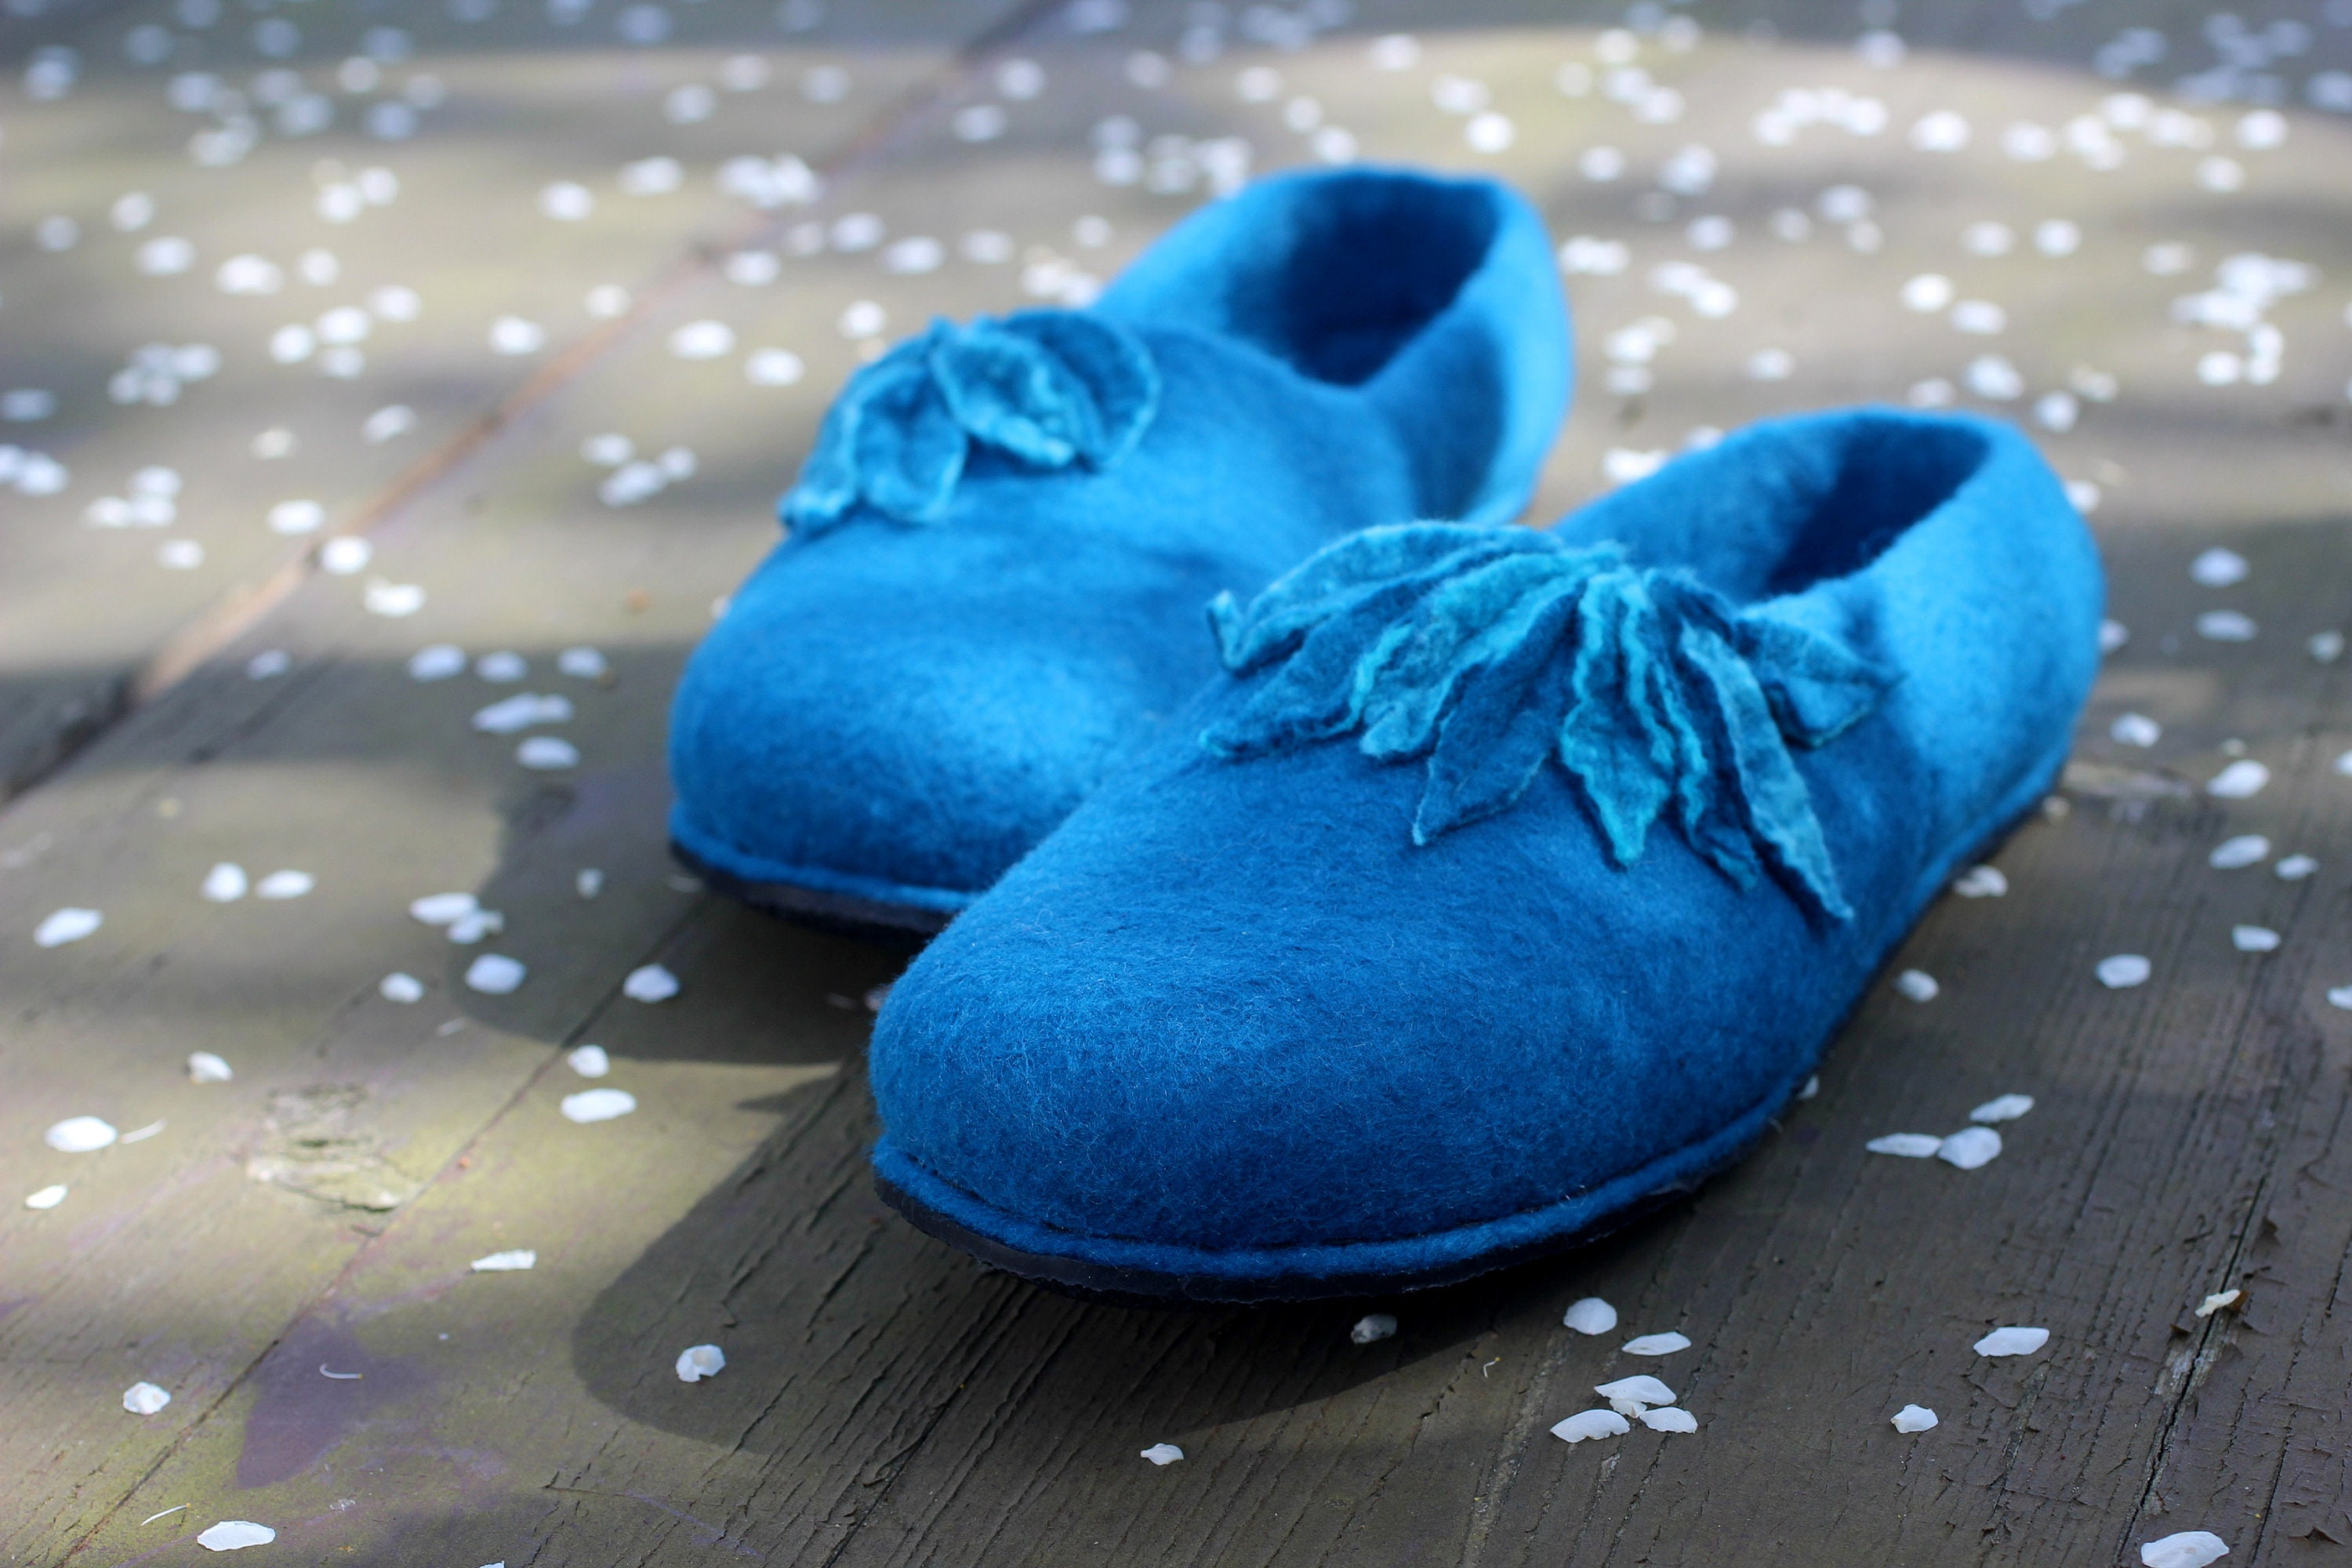 4d987de2e89d8 Woman house shoes, warm slippers from merino wool. Teal blue felted  slippers. Warm slippers.